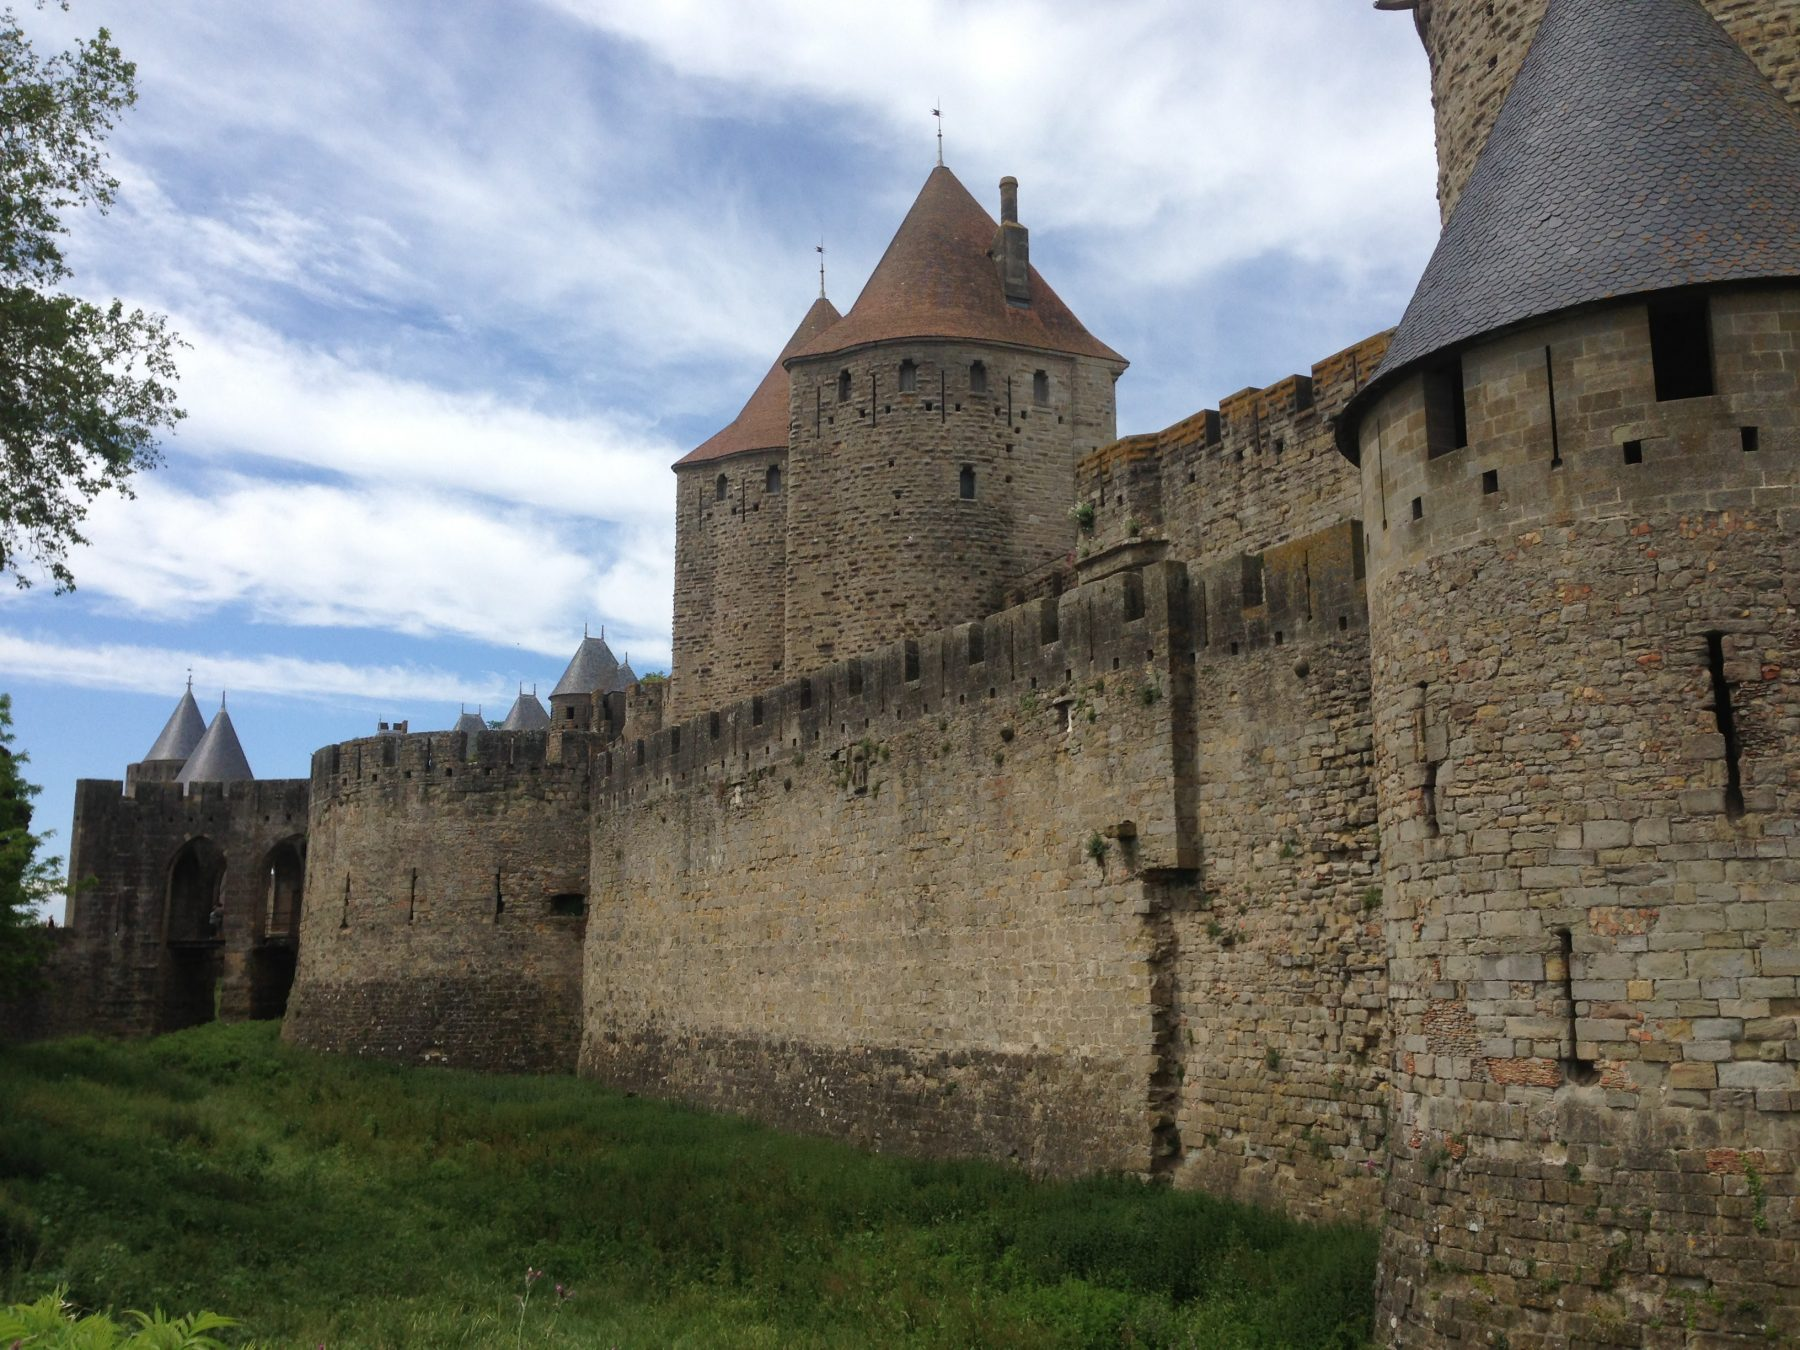 The Castle of Carcassonne